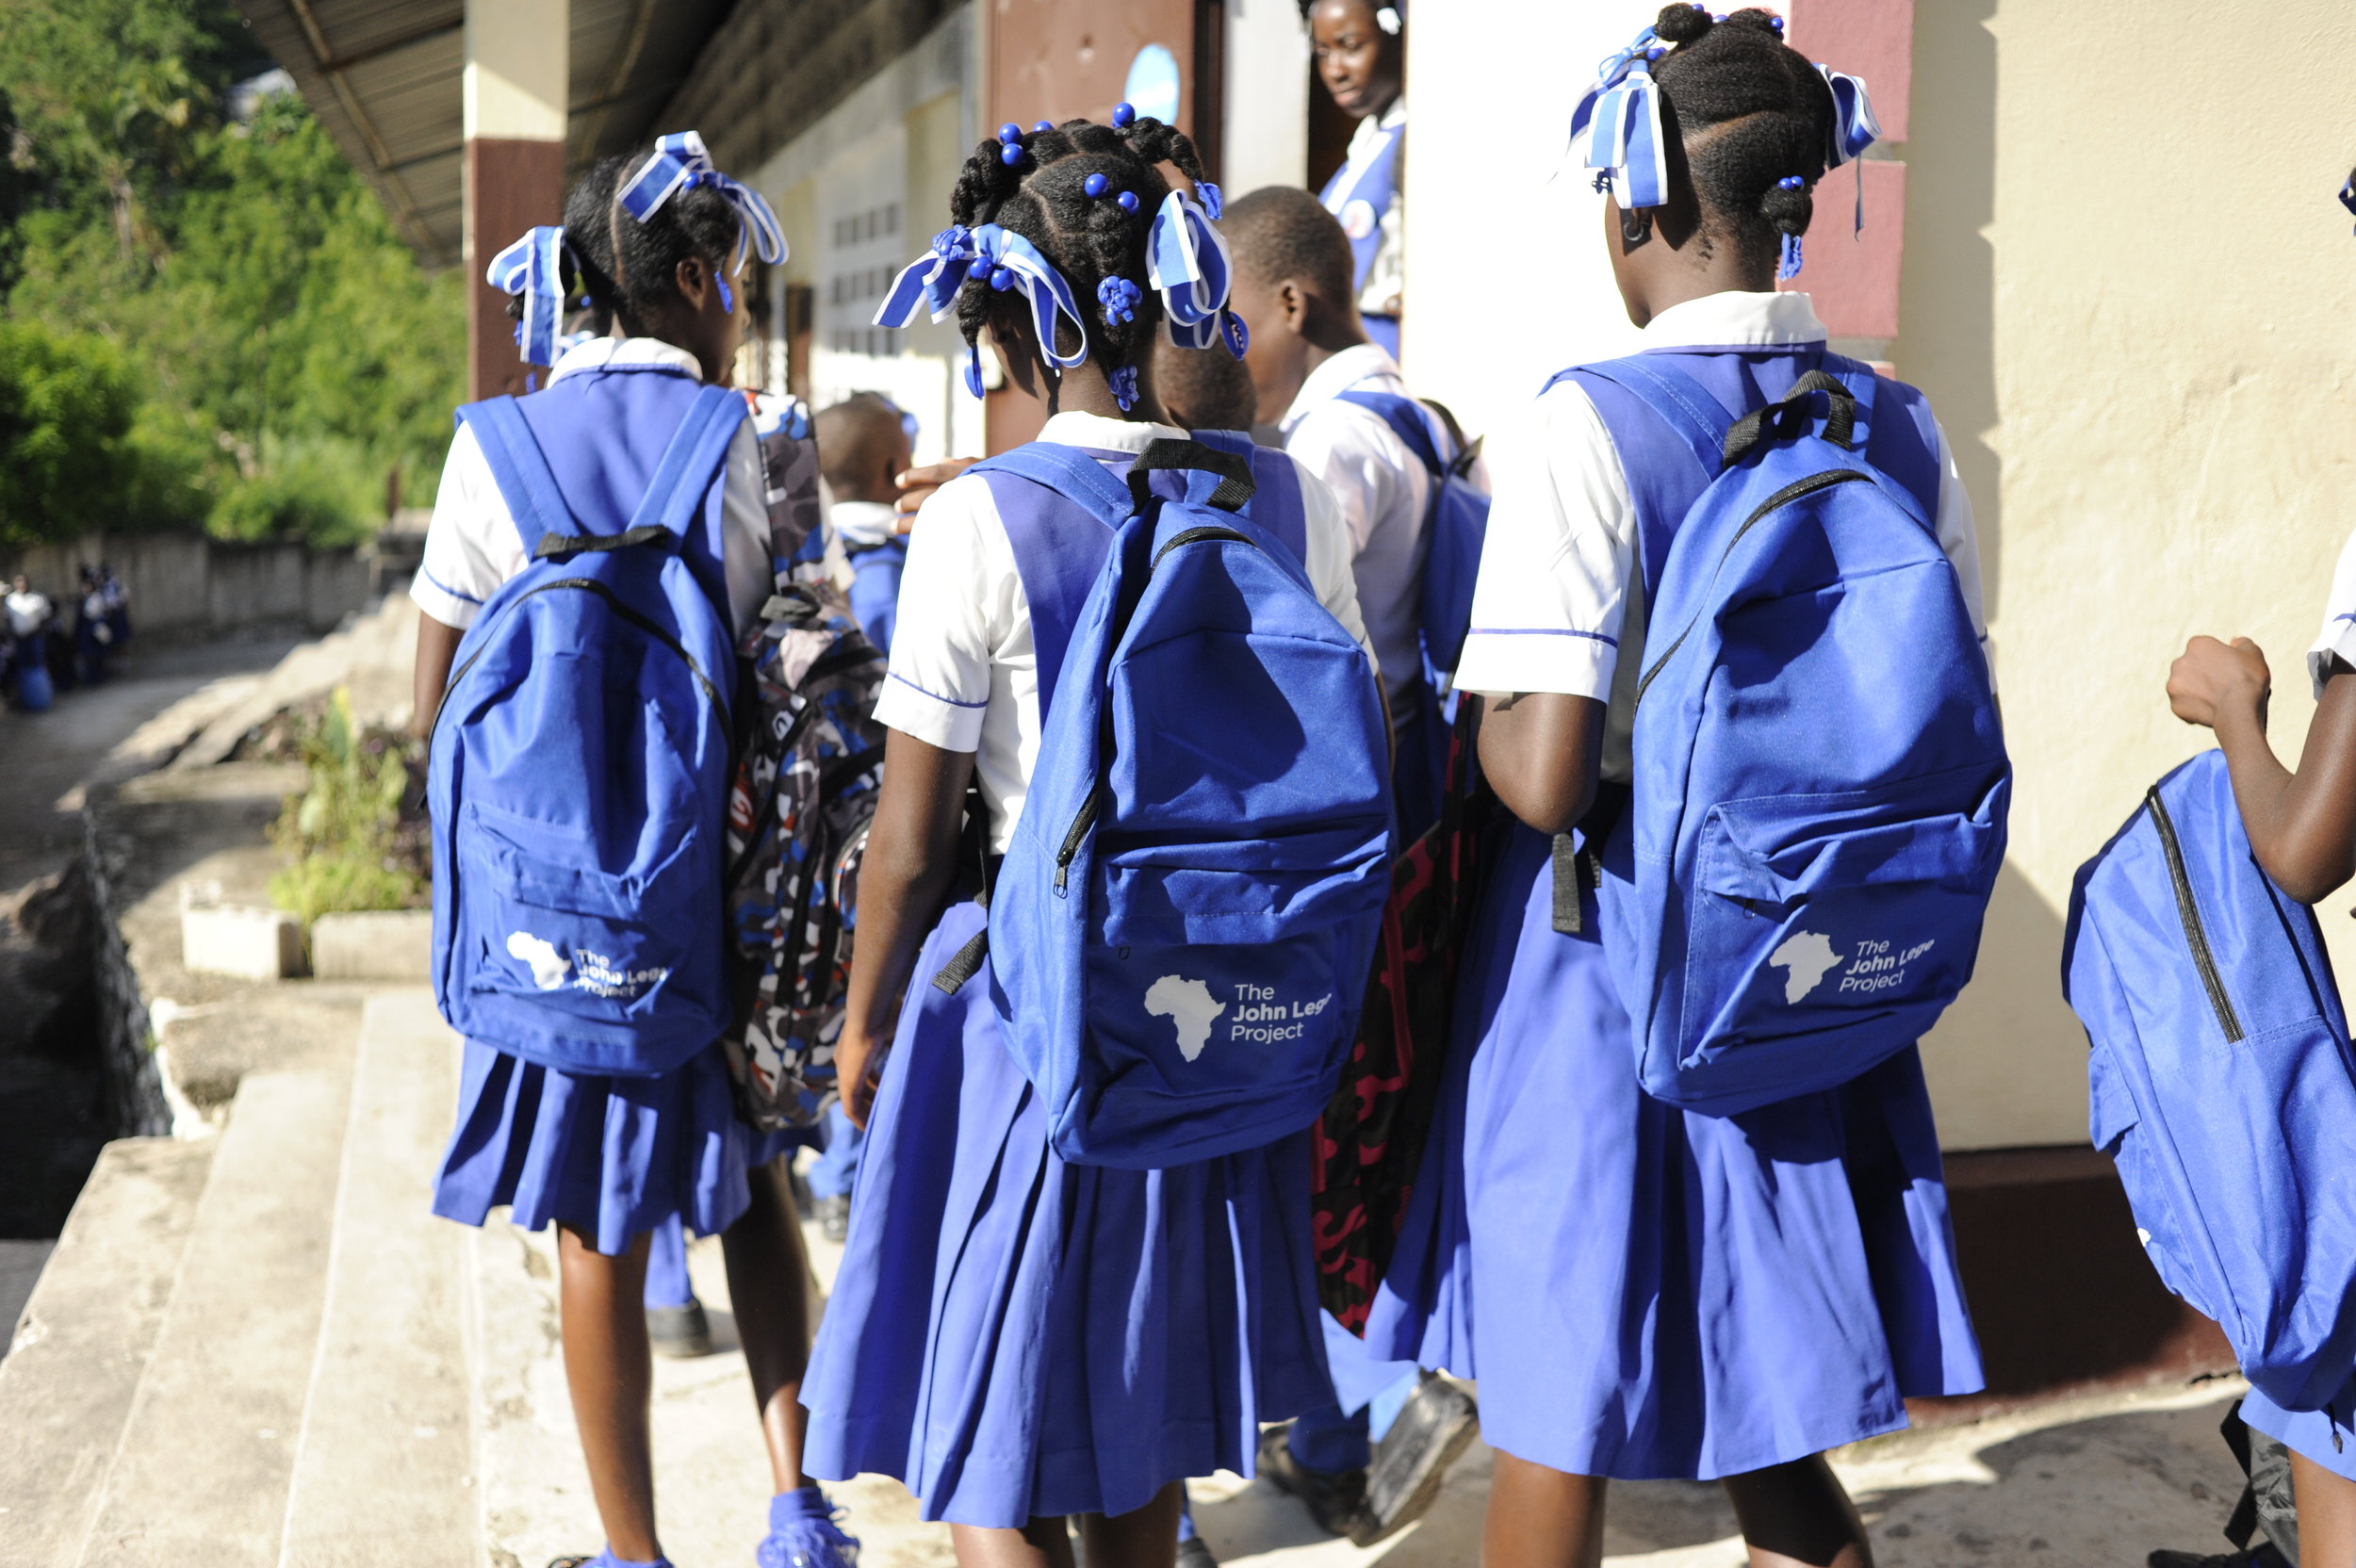 Off to school happier than before; backpacks matched their school uniforms!!!!